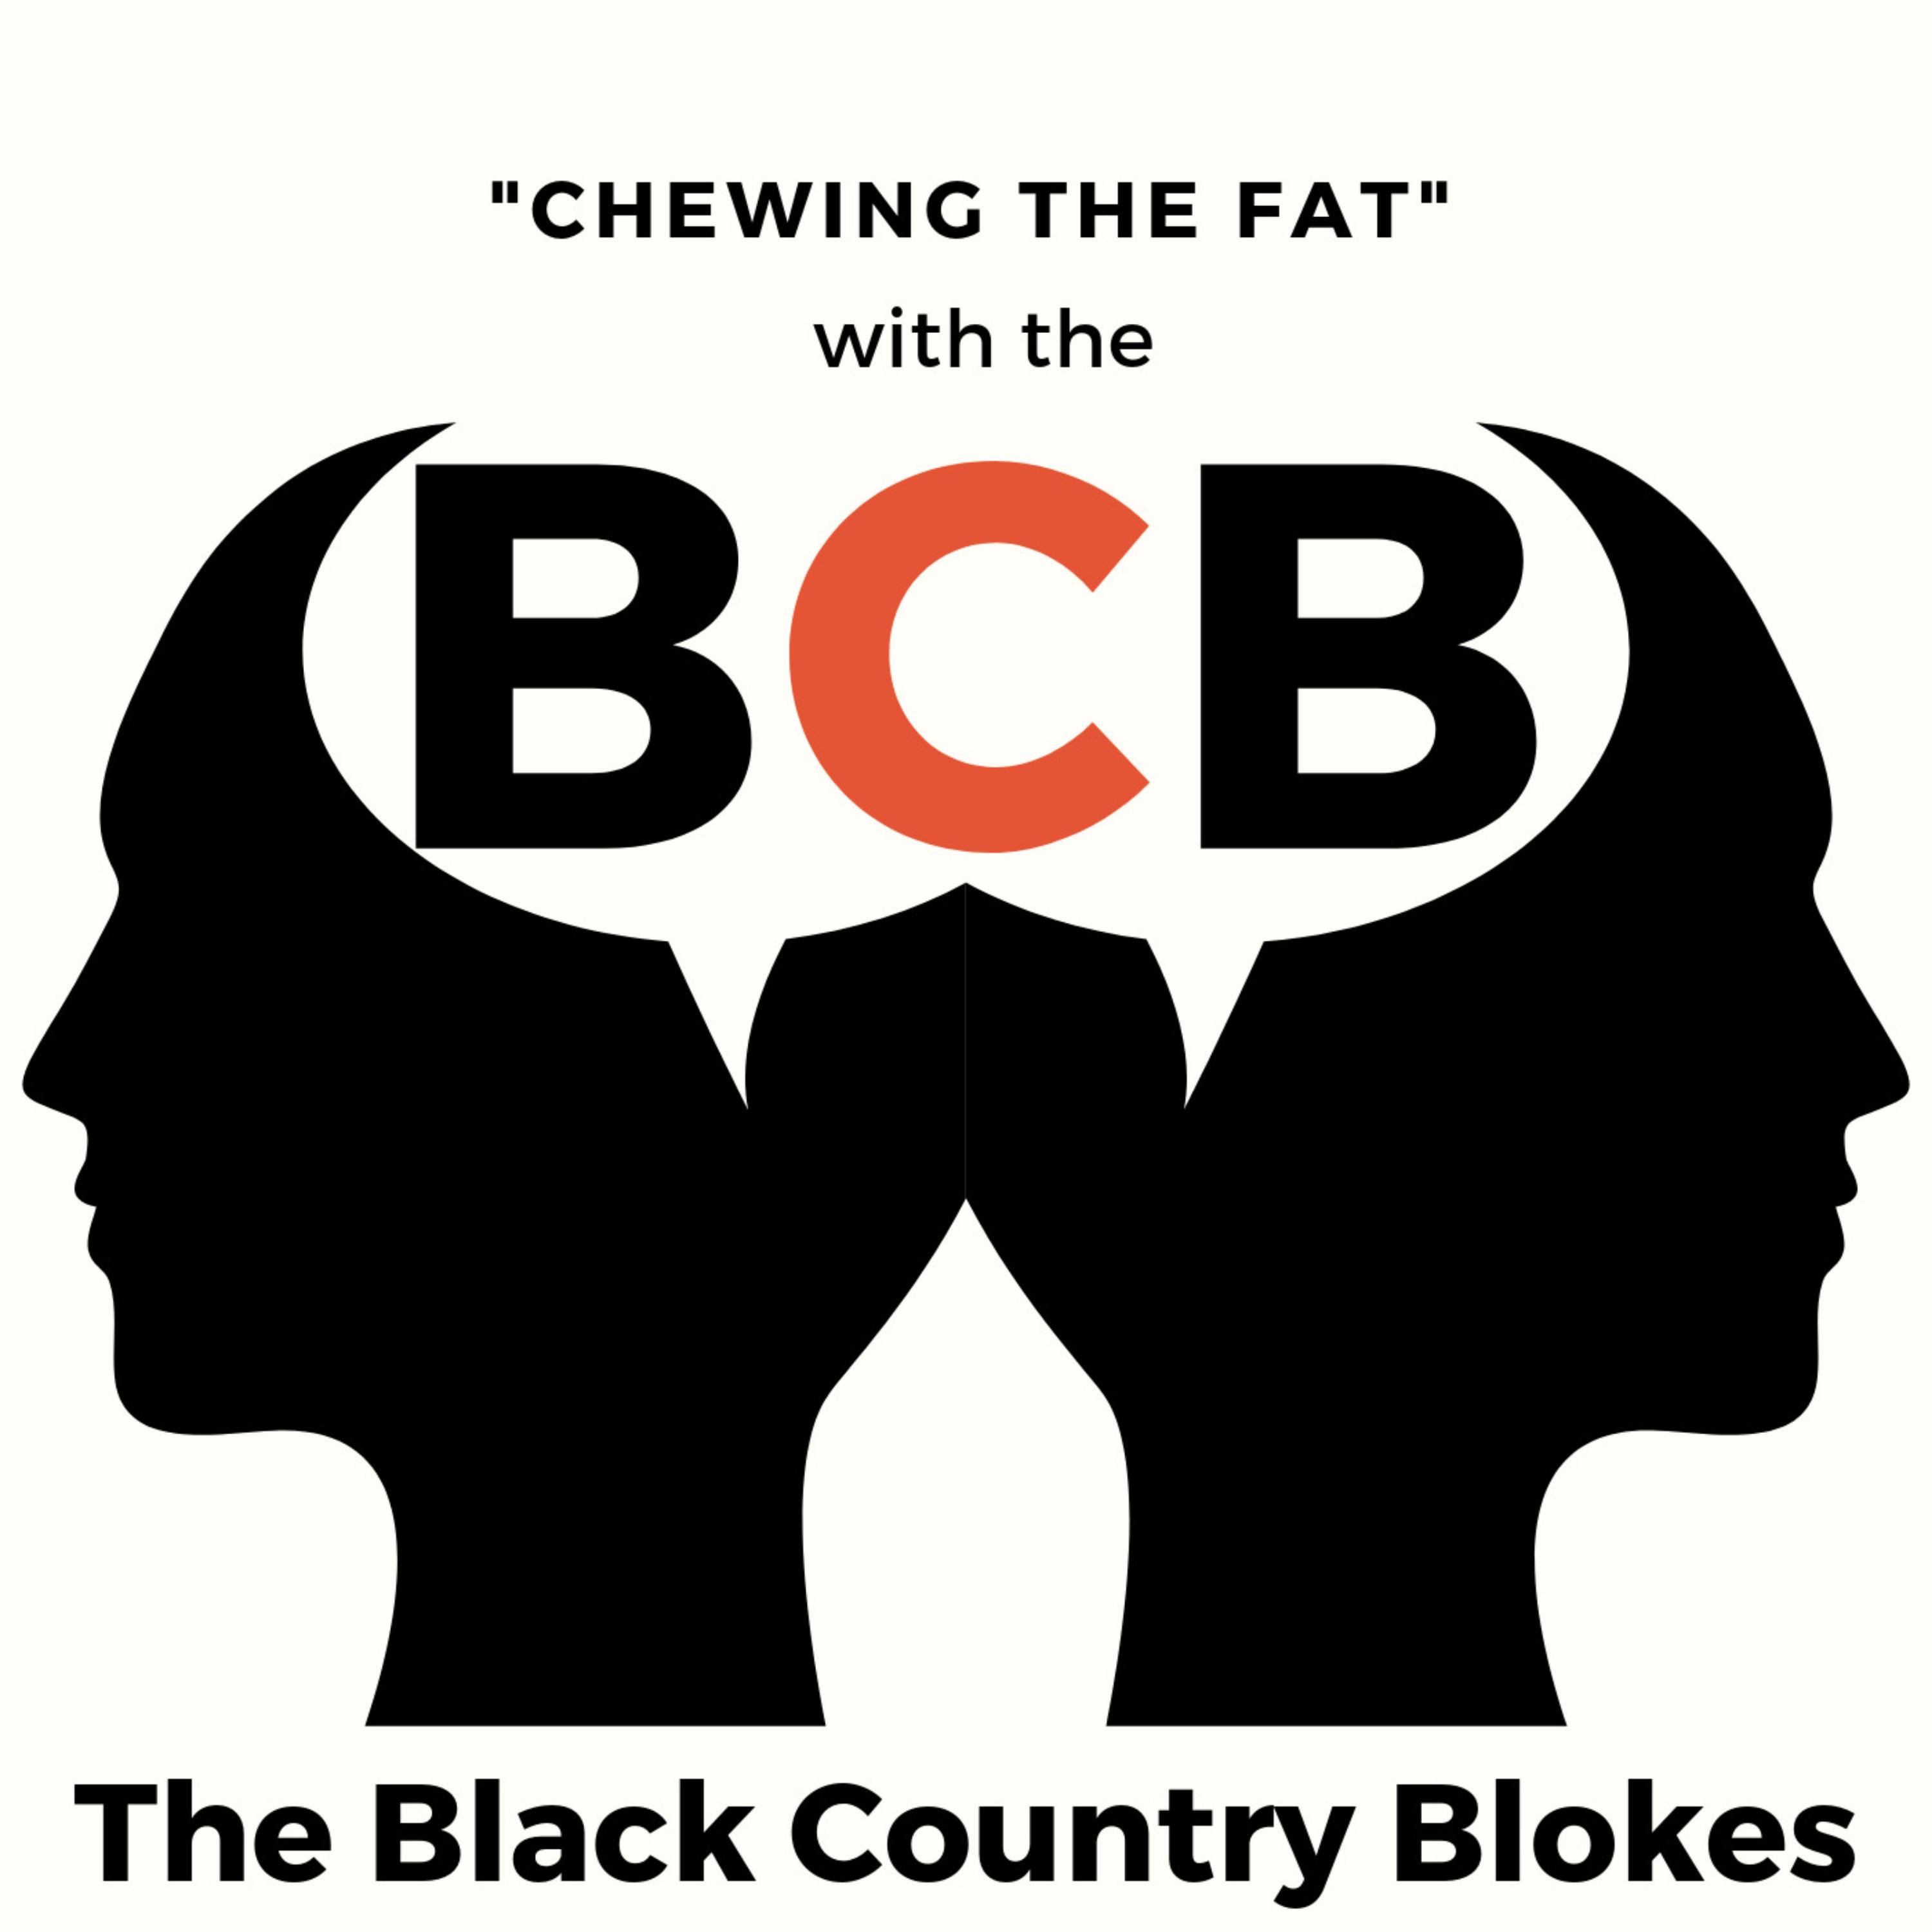 Chewing The Fat with the Black Country Blokes